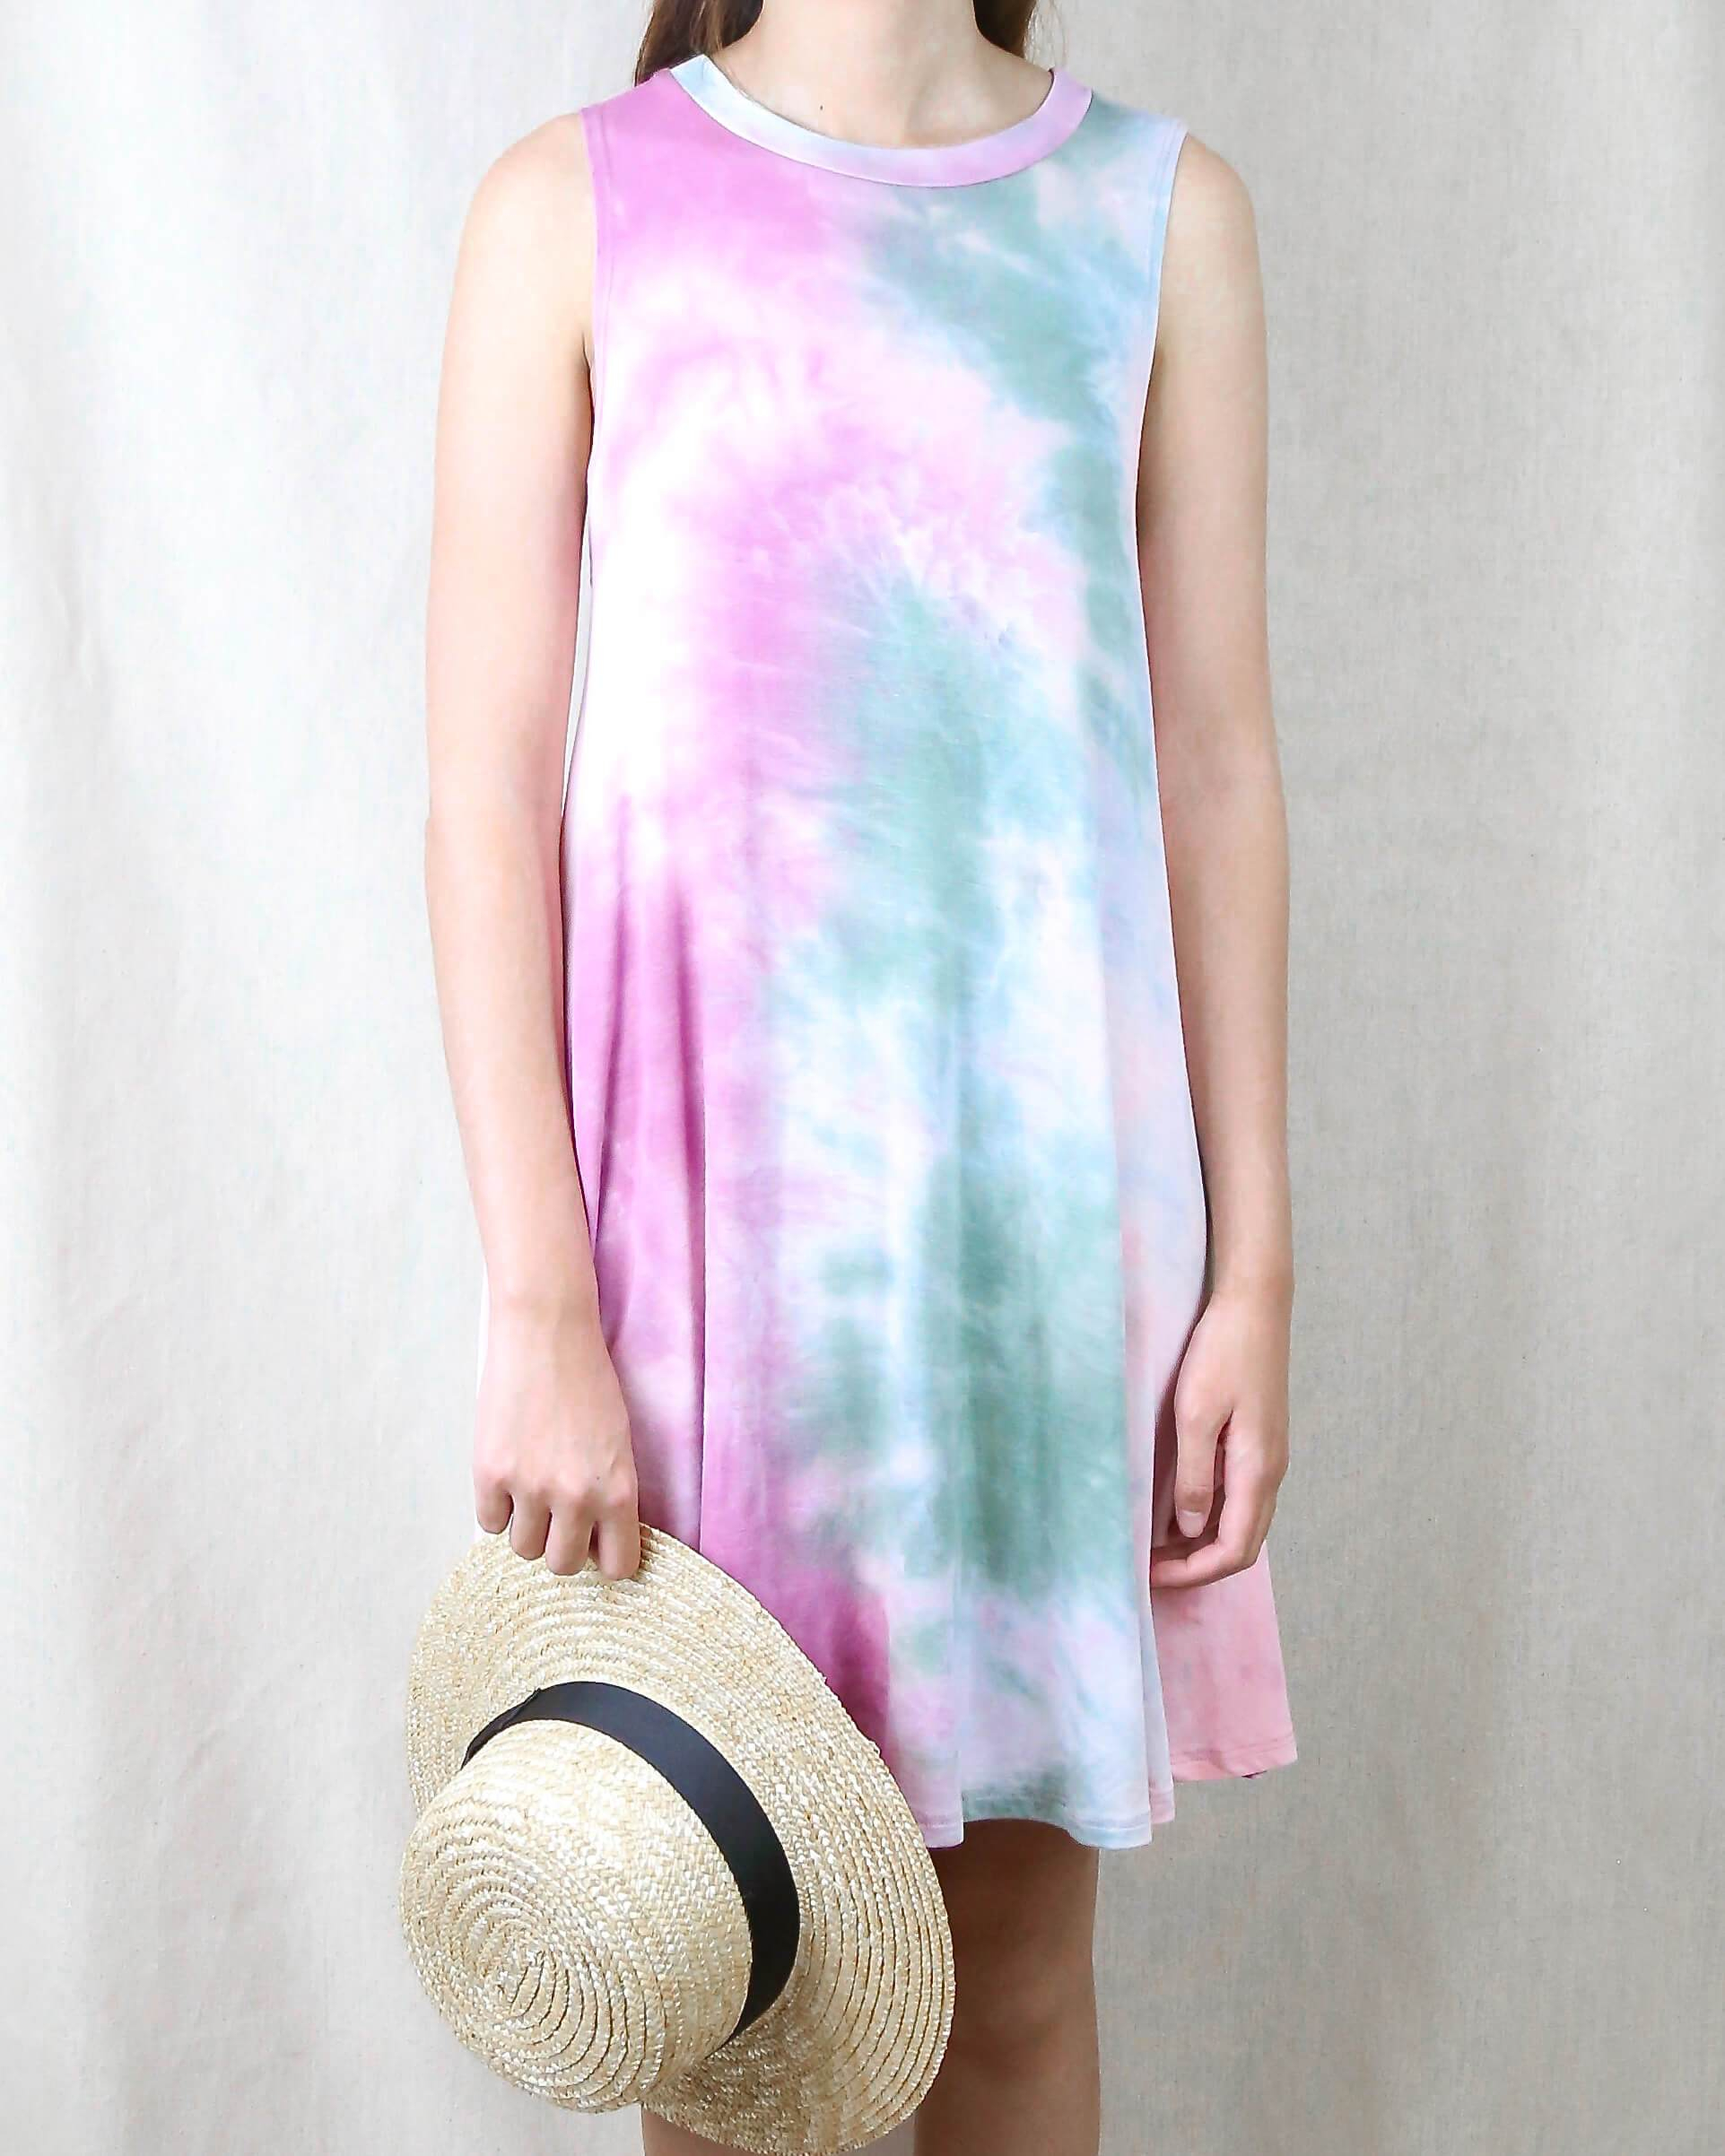 Image of To Dye For Shirt Tank Dress in Olive and Pink Tie Dye